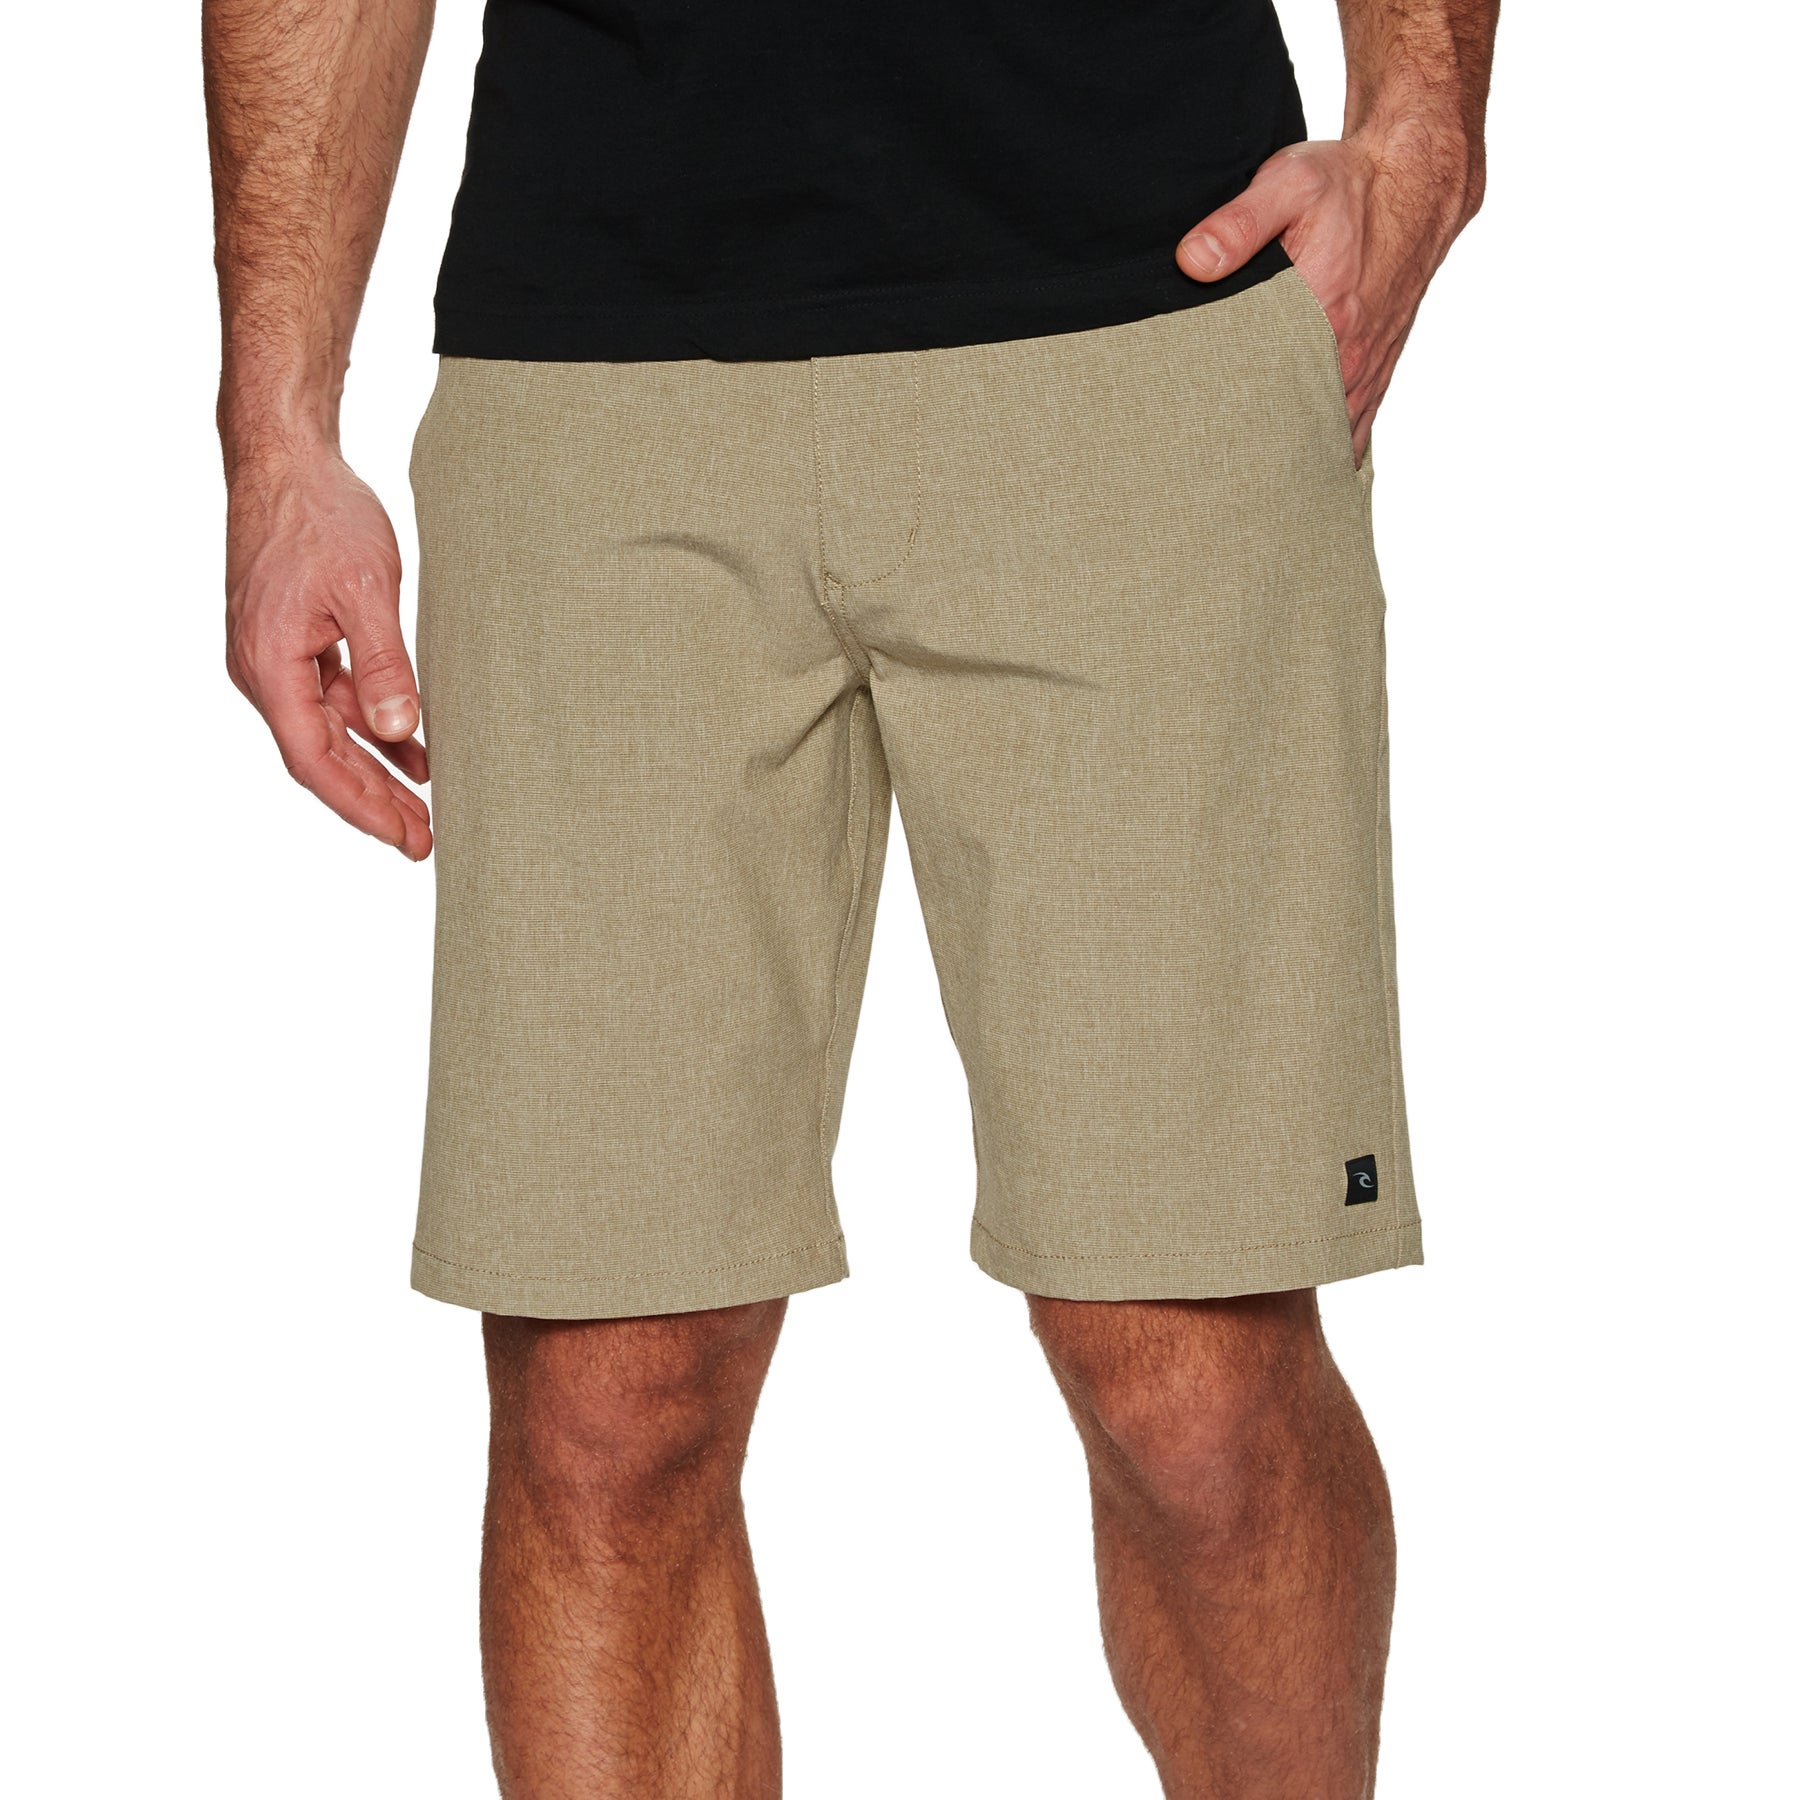 Mens ShortsFree At Surfdome Delivery Board Available qpLSzVUMG